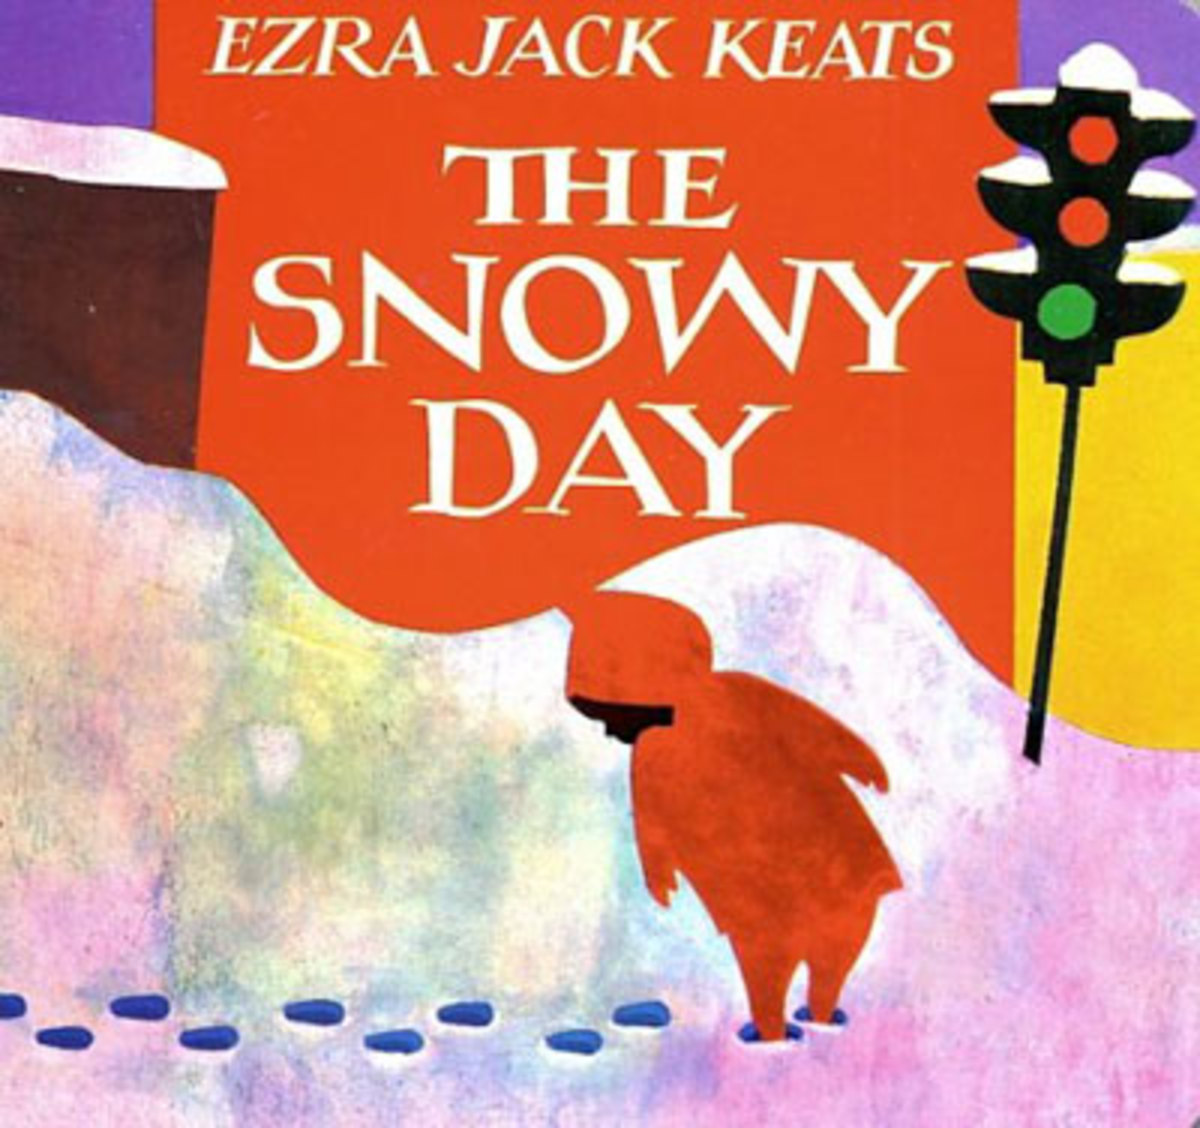 The Snowy Day by Ezra Jack Keats Preschool Lesson Plan